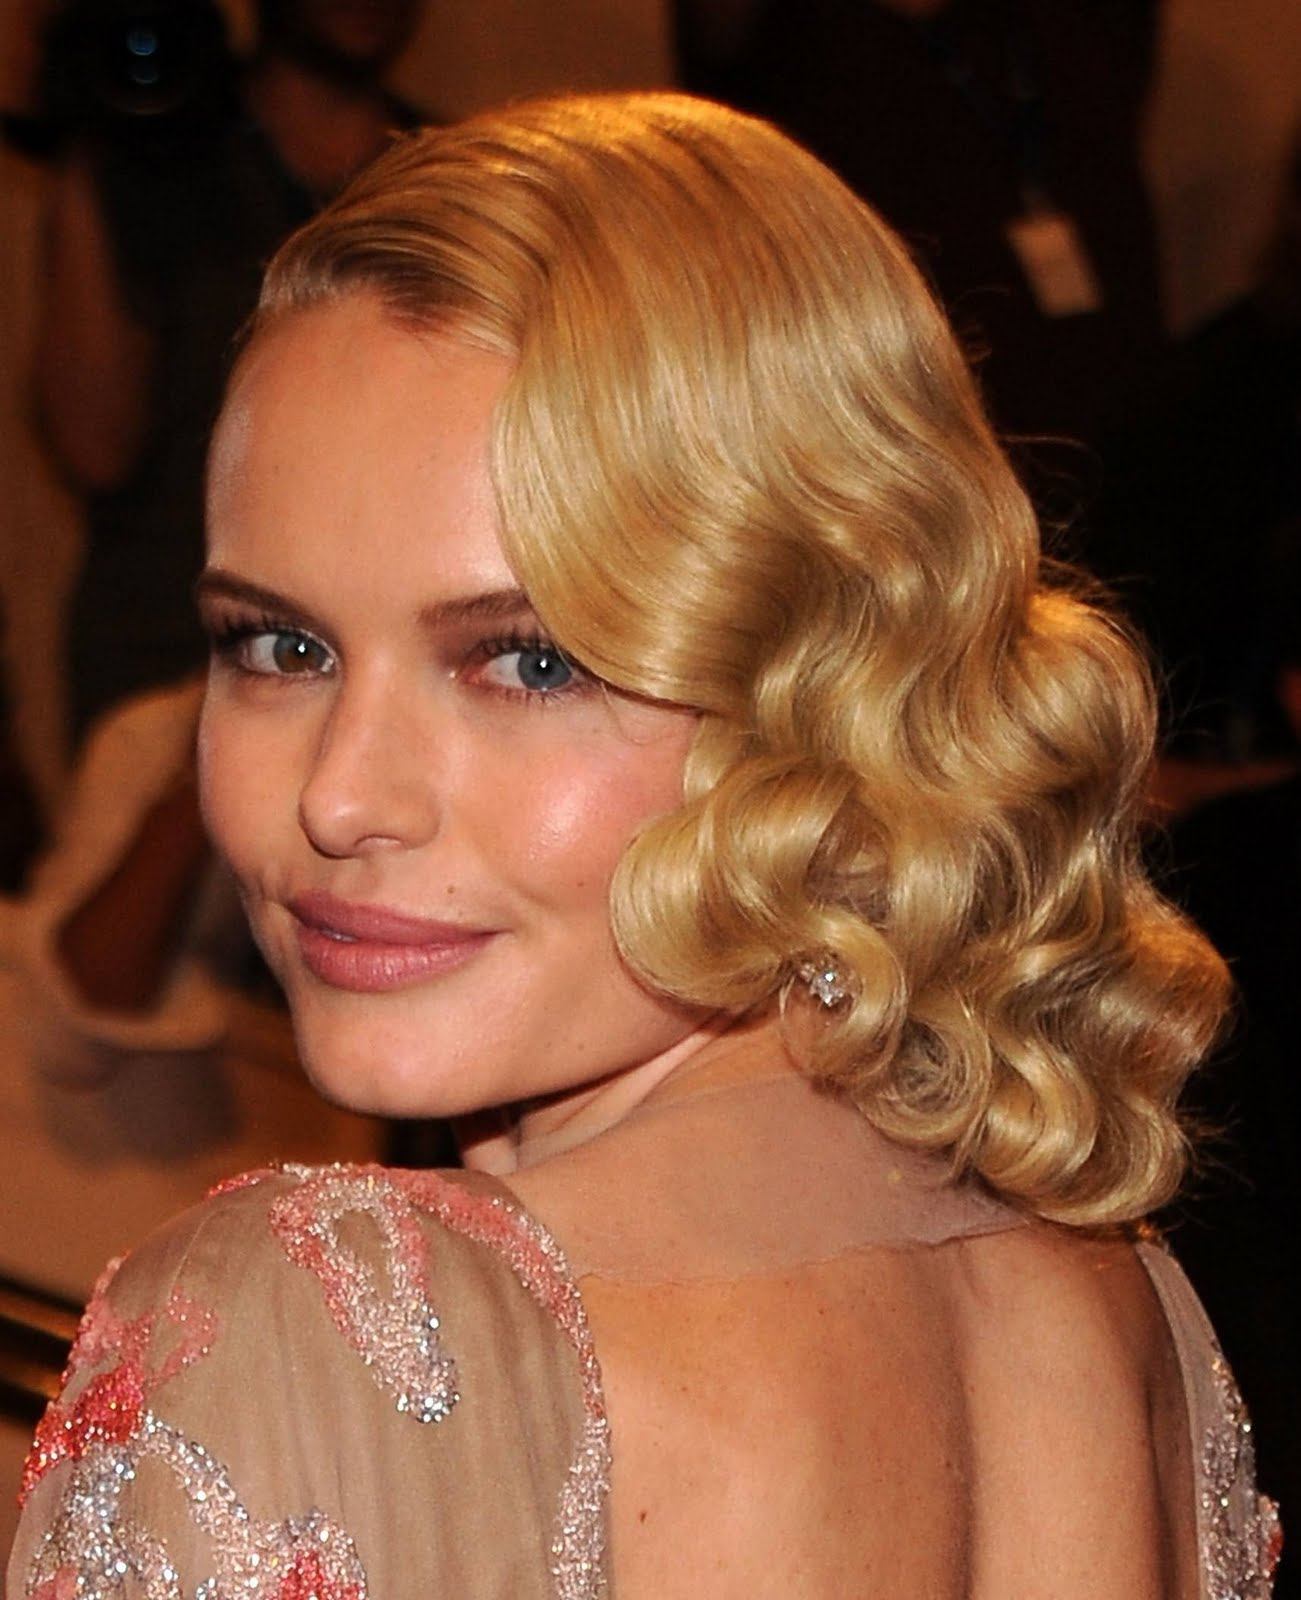 Medium Length Curly Hairstyles For Weddings: Medium Length Wavy Hairstyles For Blonde Hair 2011